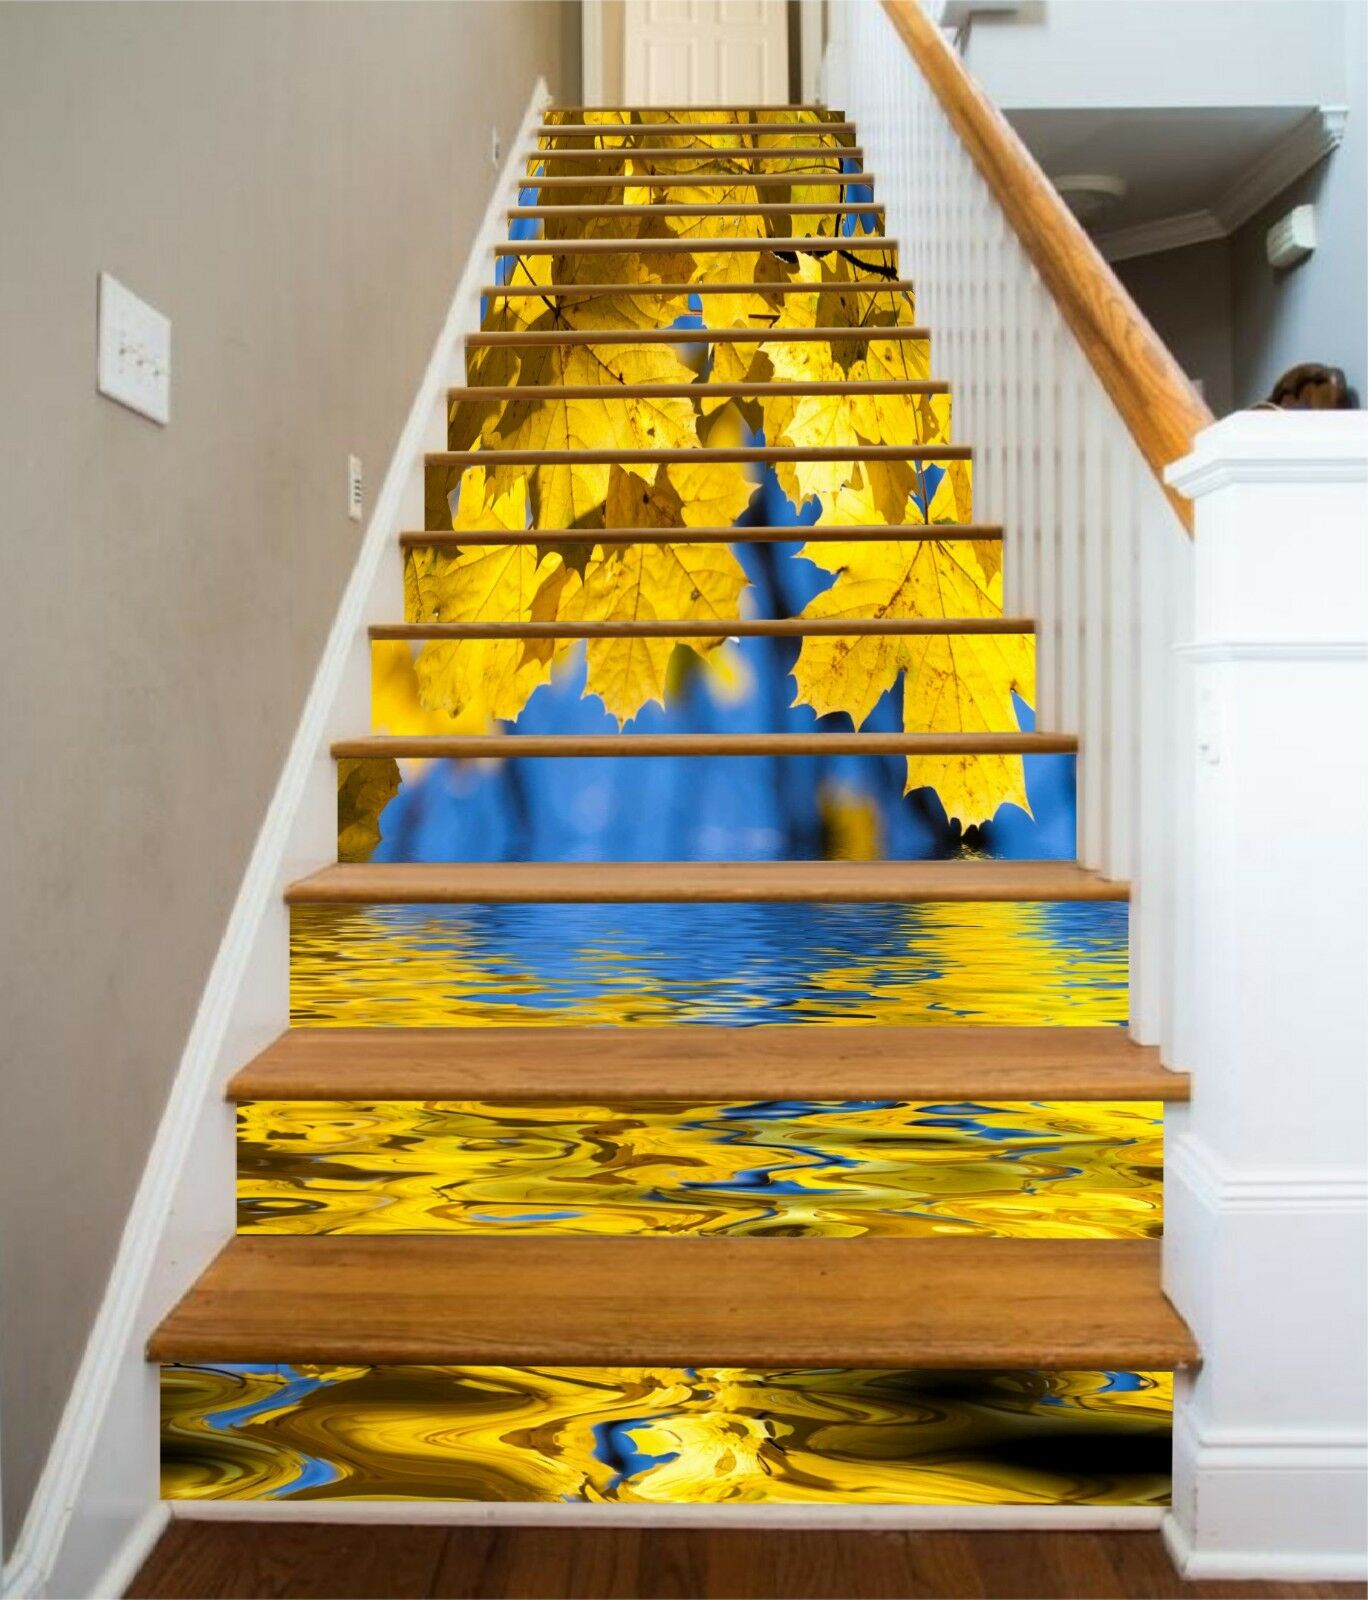 3D Leaves River Stair Risers Decoration Photo Mural Vinyl Decal Wallpaper UK